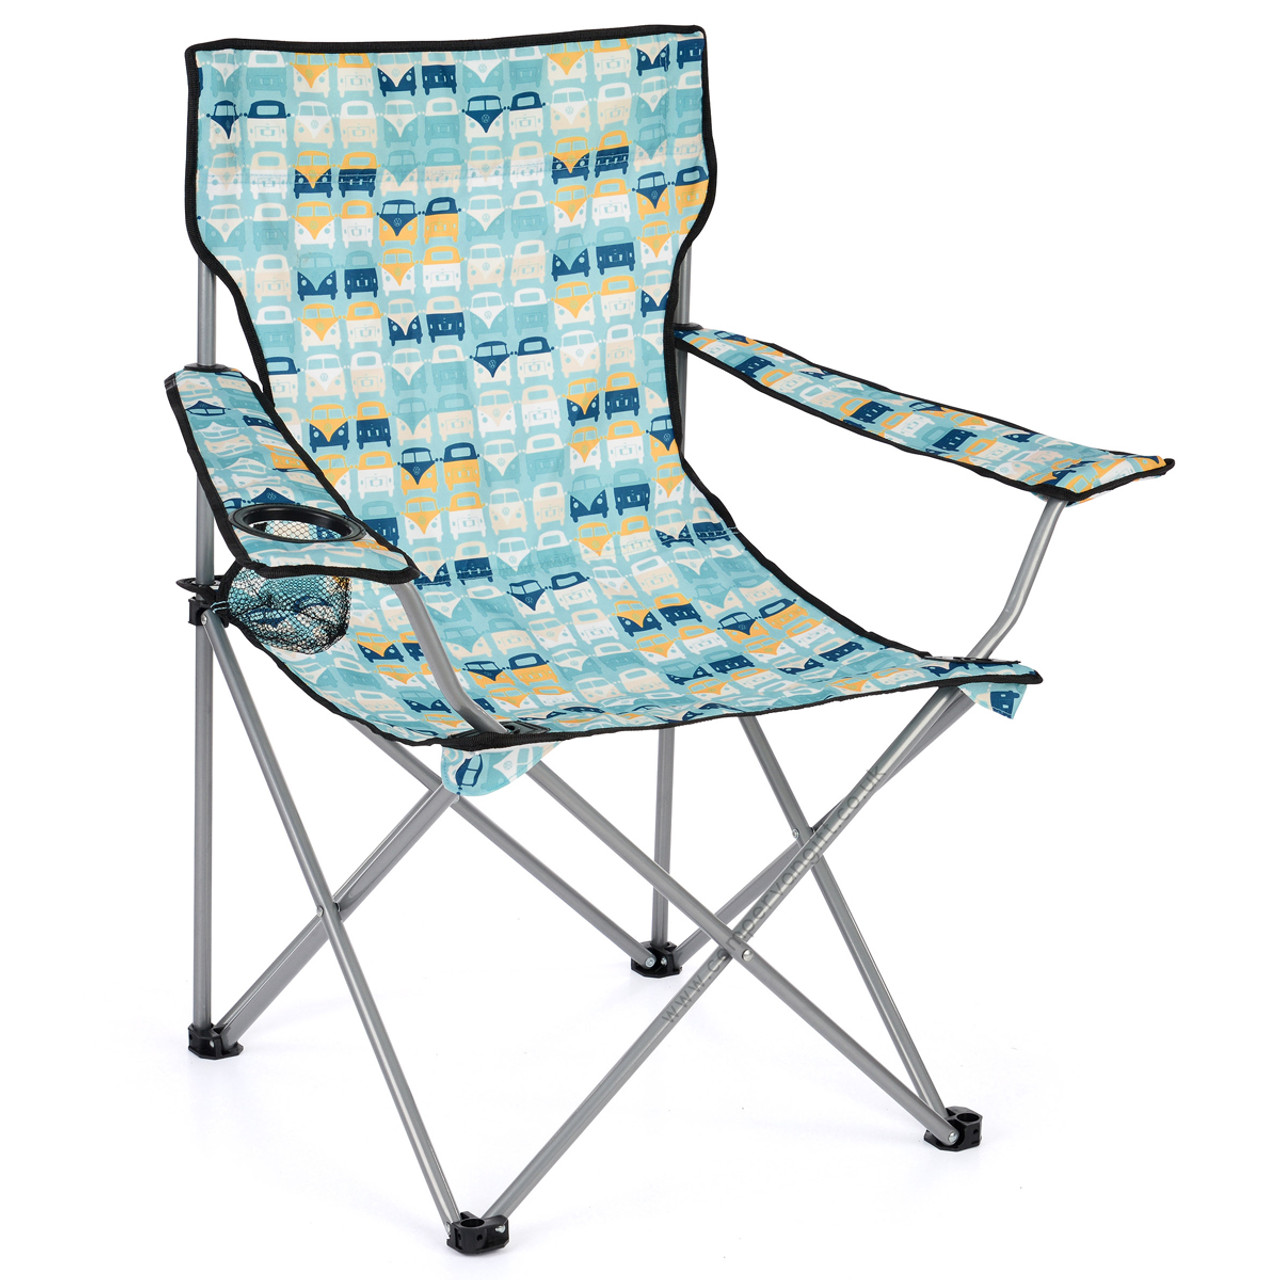 Phenomenal Volkswagen Campervan Blue Beach Folding Camping Chair Pabps2019 Chair Design Images Pabps2019Com